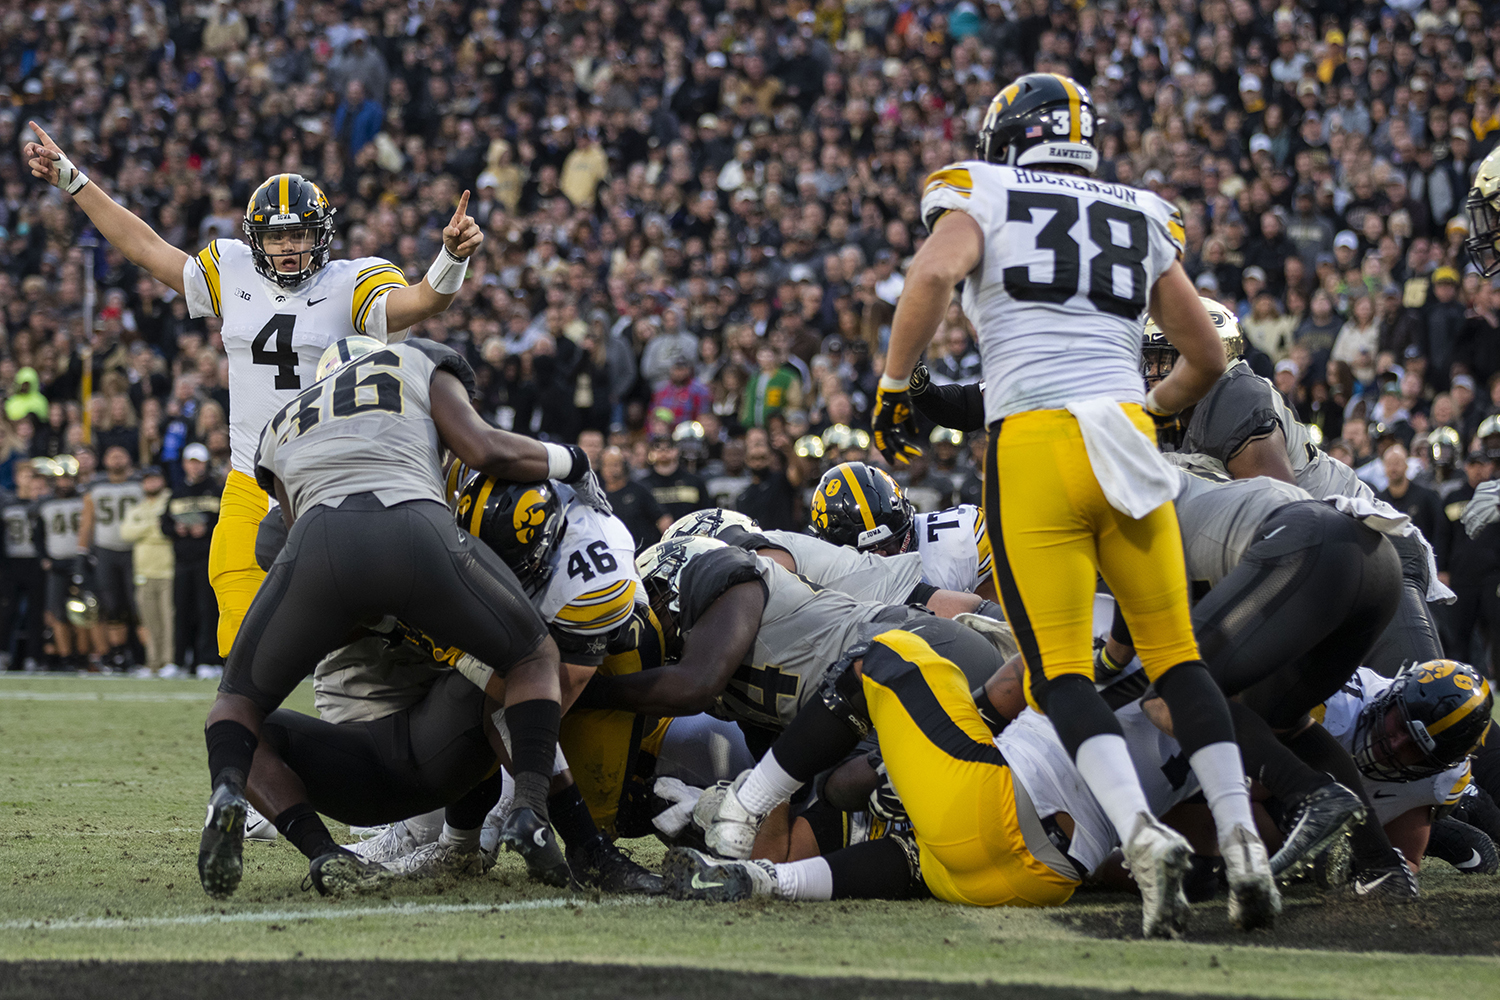 Iowa+quarterback+Nate+Stanley+%284%29+gestures+at+a+possible+Iowa+touchdown+from+Iowa+fullback+Austin+Kelly+%2846%29+during+the+Iowa%2FPurdue+game+at+Ross-Ade+Stadium+in+West+Lafayette%2C+Ind.+The+Boilermakers+defeated+the+Hawkeyes%2C+38-36%2C+with+a+last+second+field+goal.